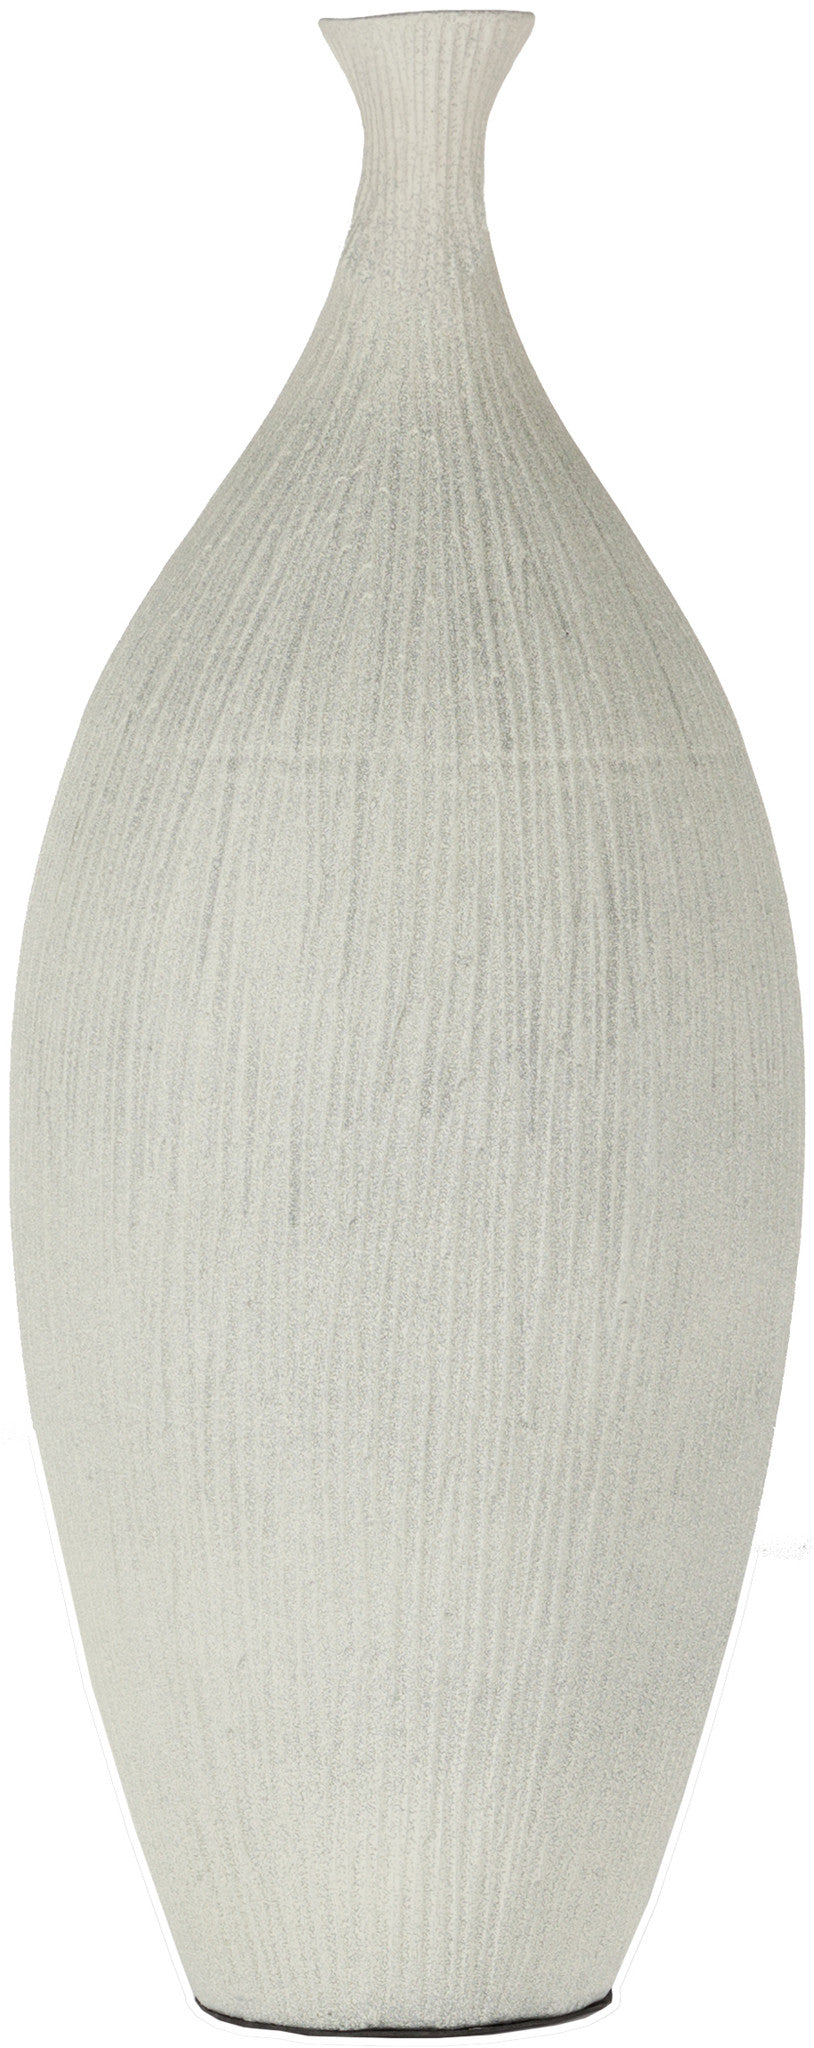 Surya Natural NCV-852 Vase main image